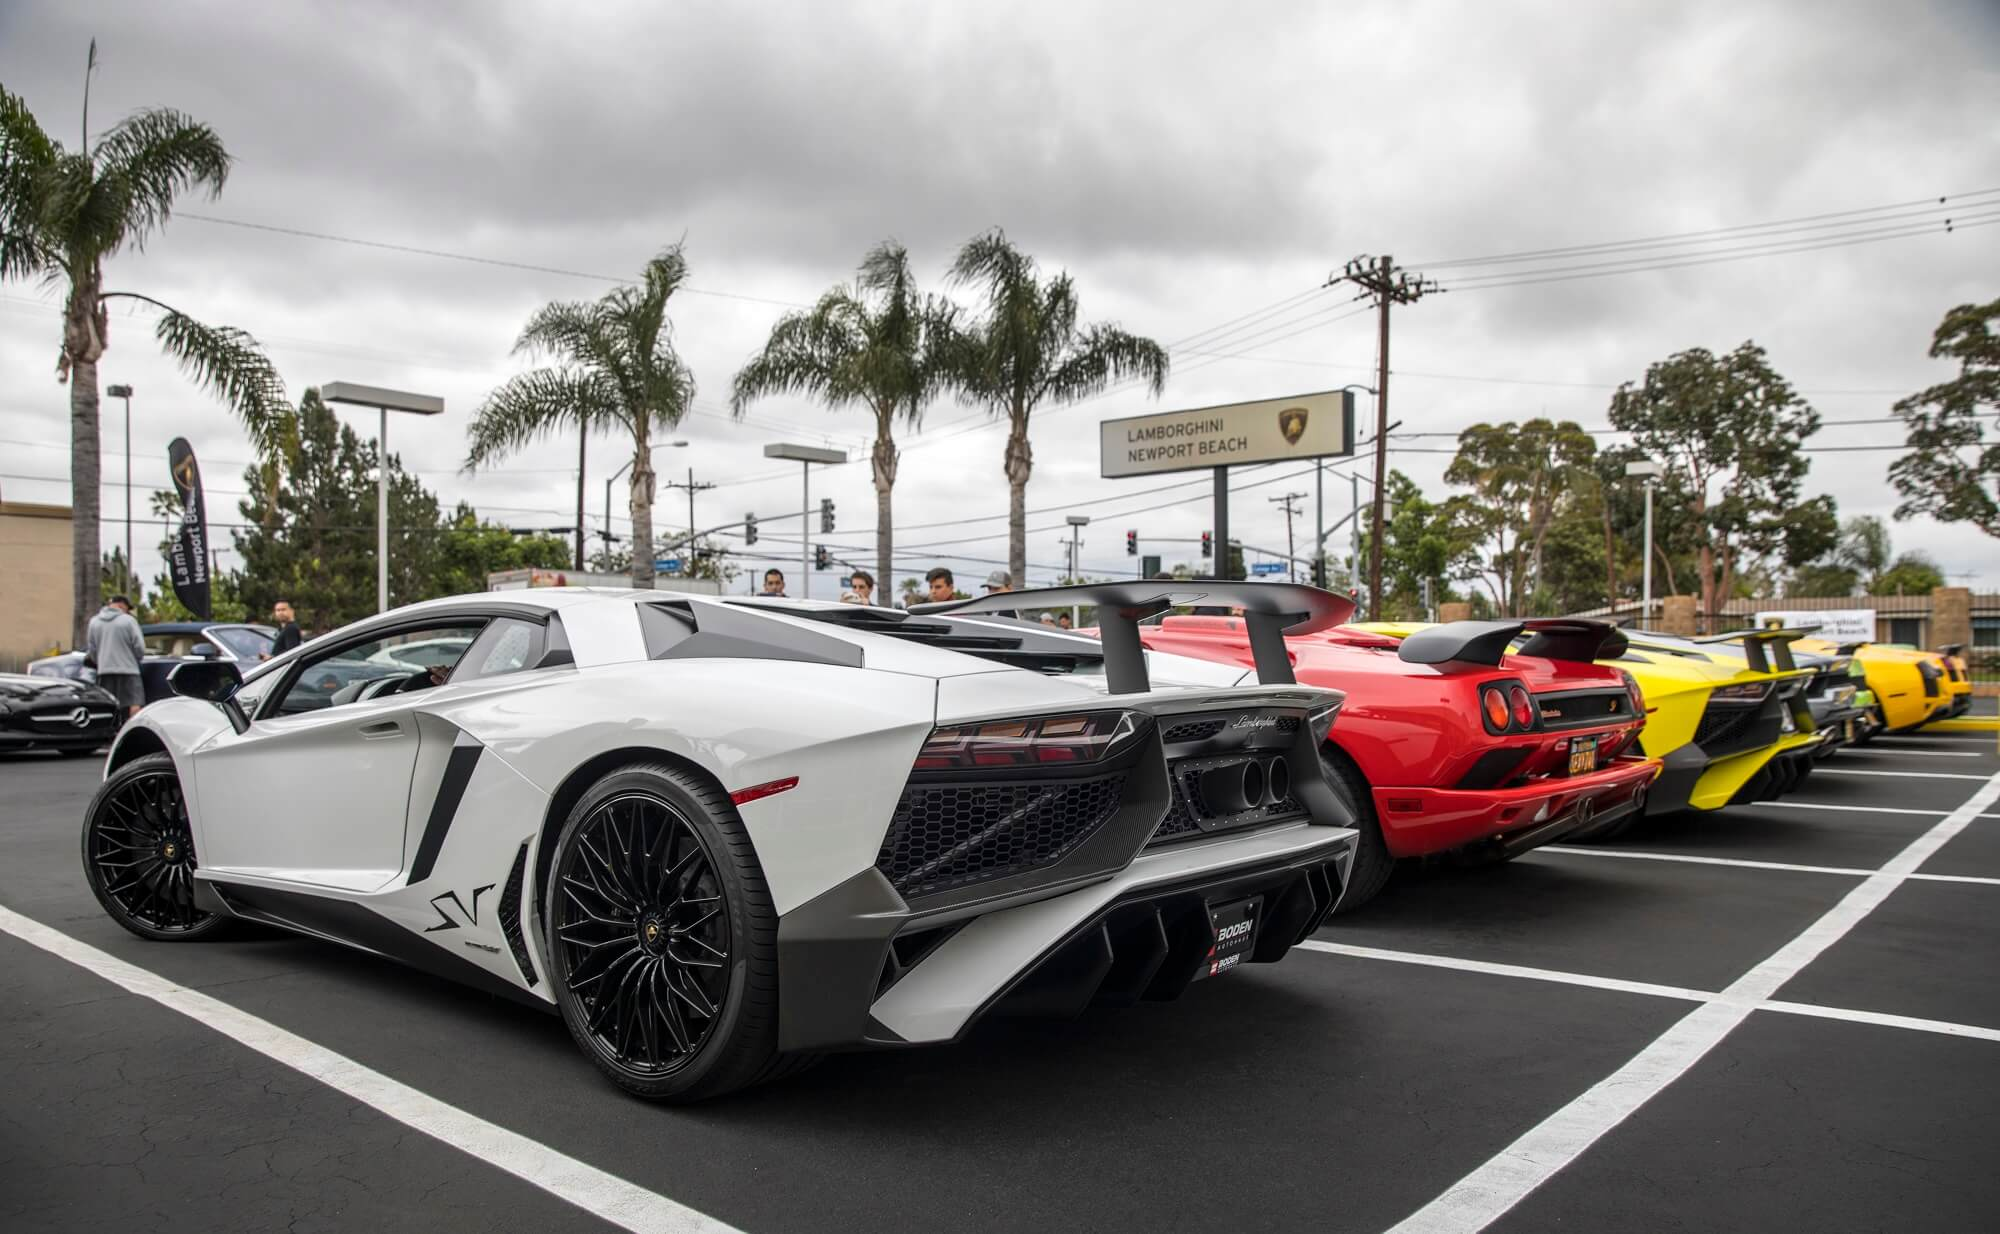 Exclusive Lamborghini Newport Beach Supercar Show Cars247